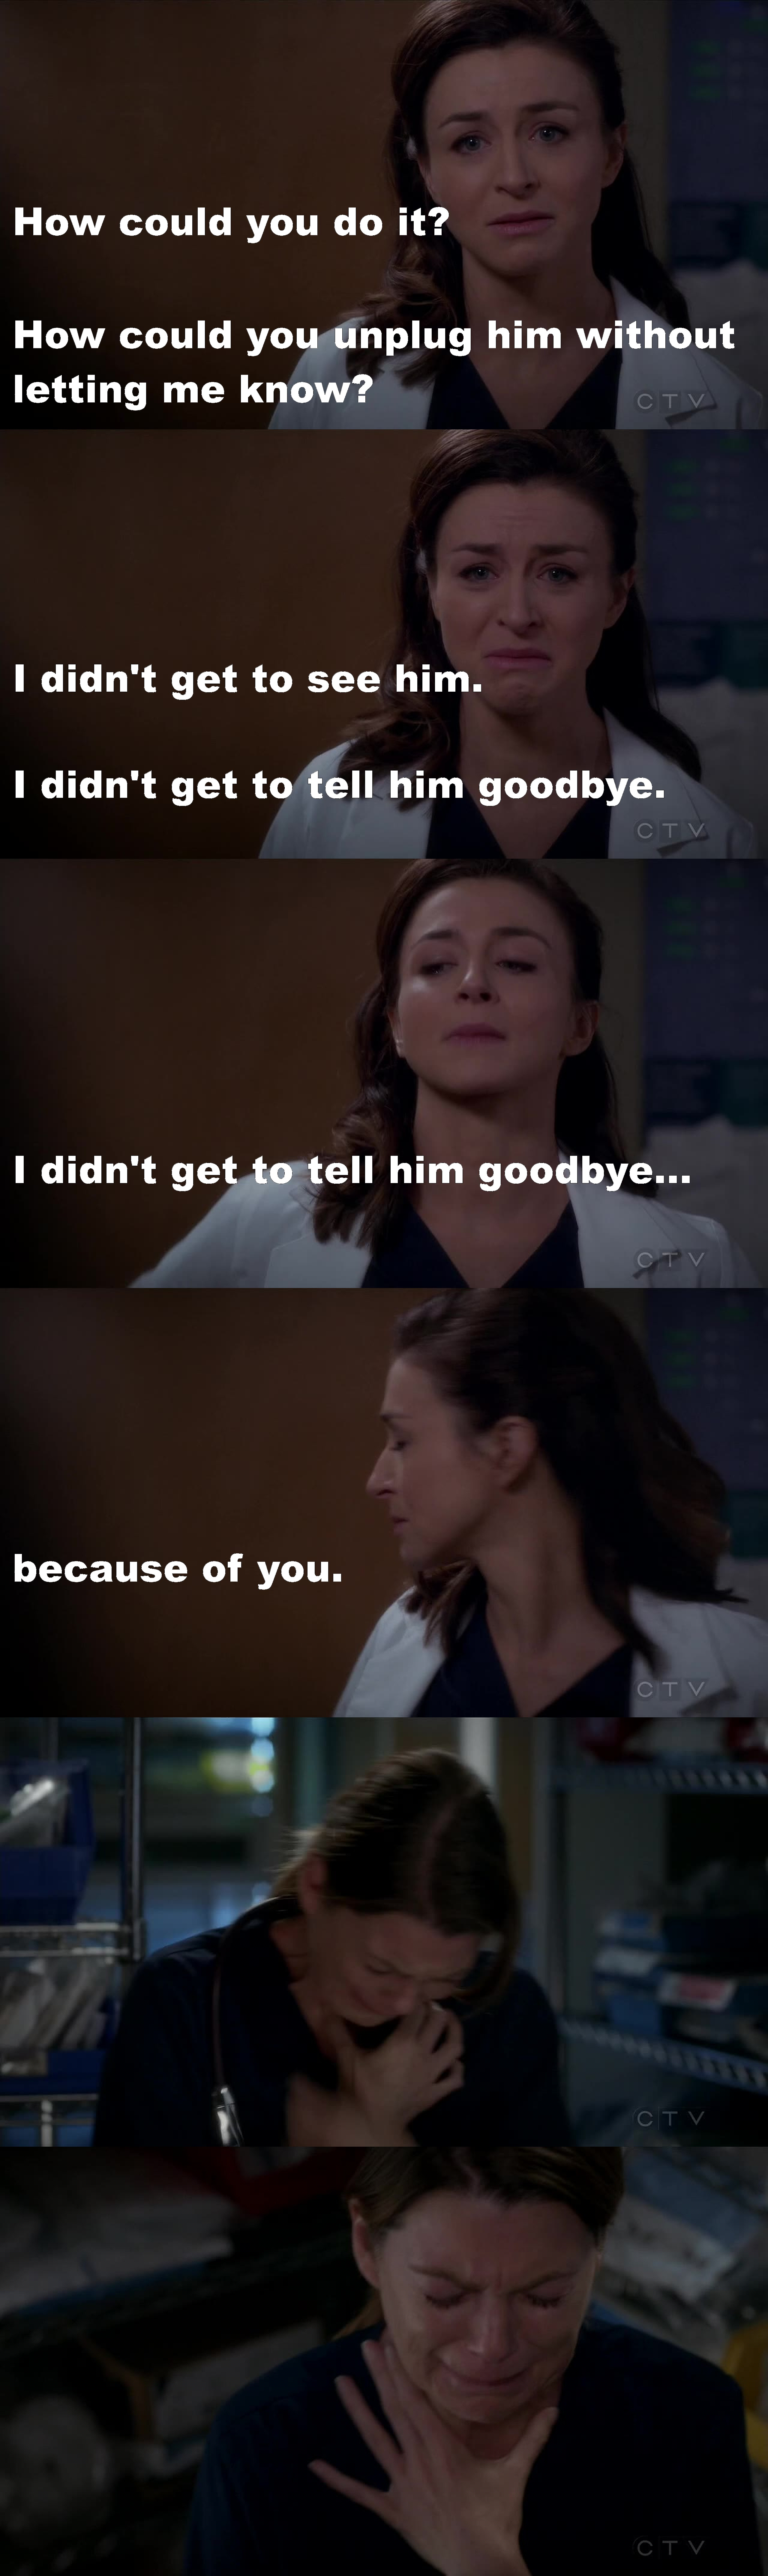 One of the best scenes ever, from  the point of view of acting. Watching Mer collapse, even though for a while, just broke my heart. And Caterina Scorsone was just... WOW!!! I'm even more speechless, episode after episode